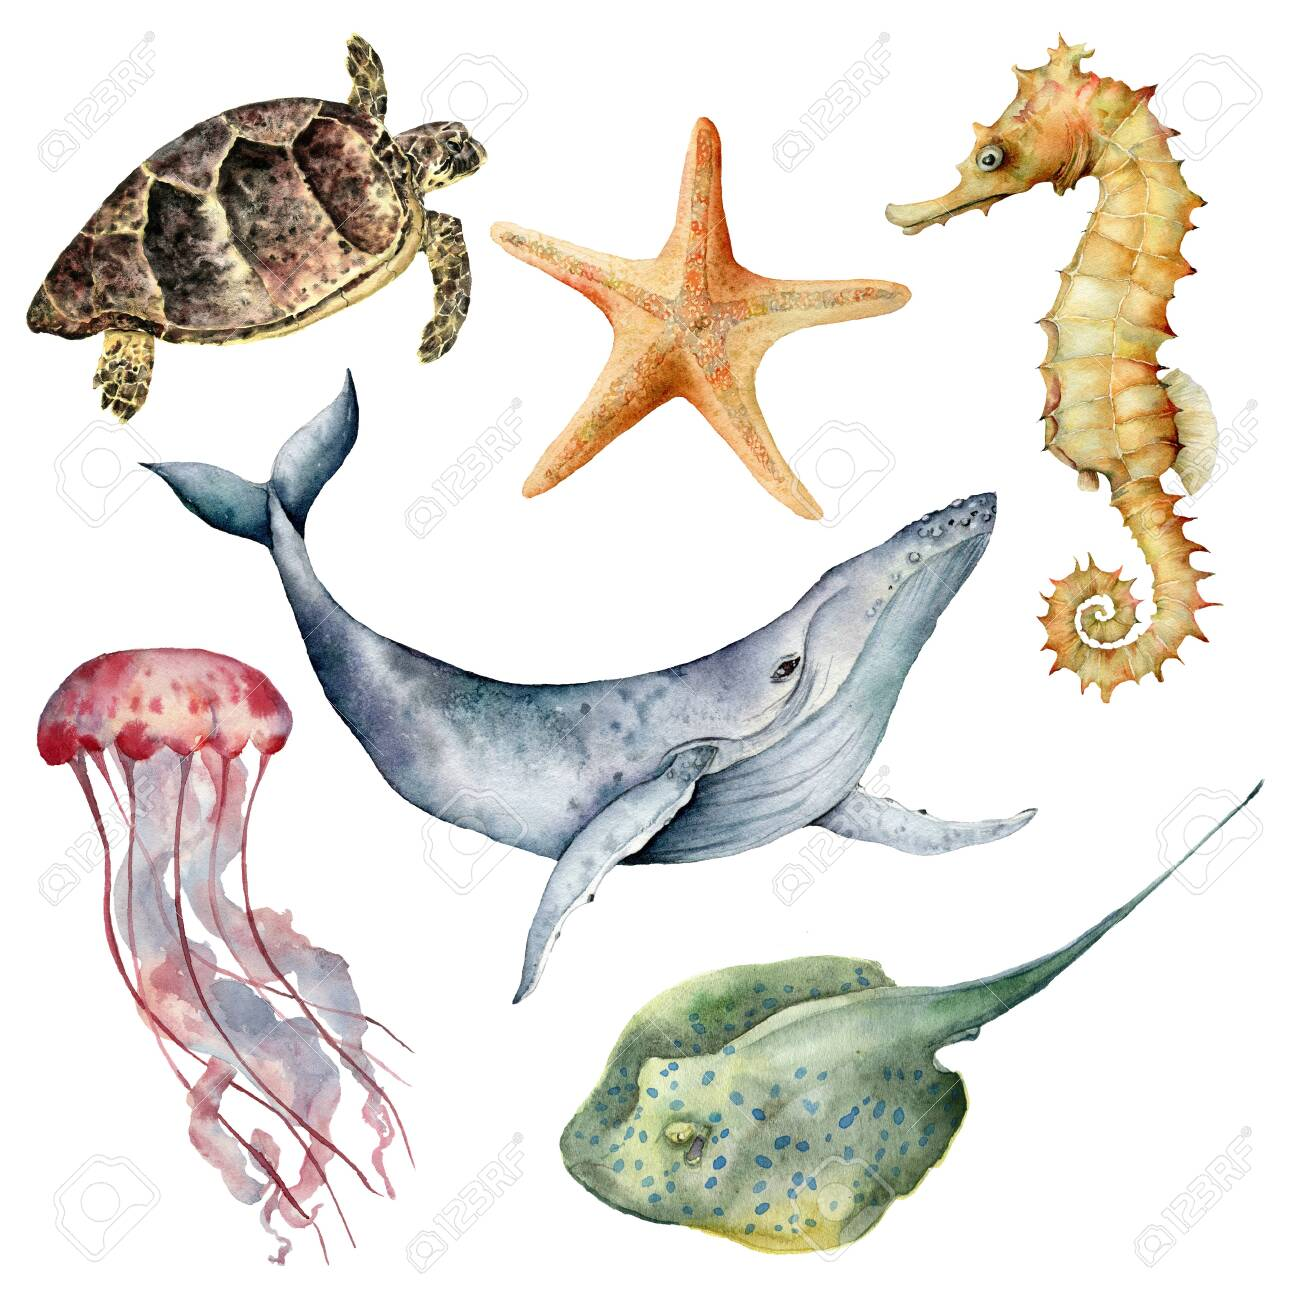 Watercolor underwater animals set. Hand painted whale, starfish, seahorse, stingray, jellyfish and turtle isolated on white background. Aquatic illustration for design, print or background. - 123829489